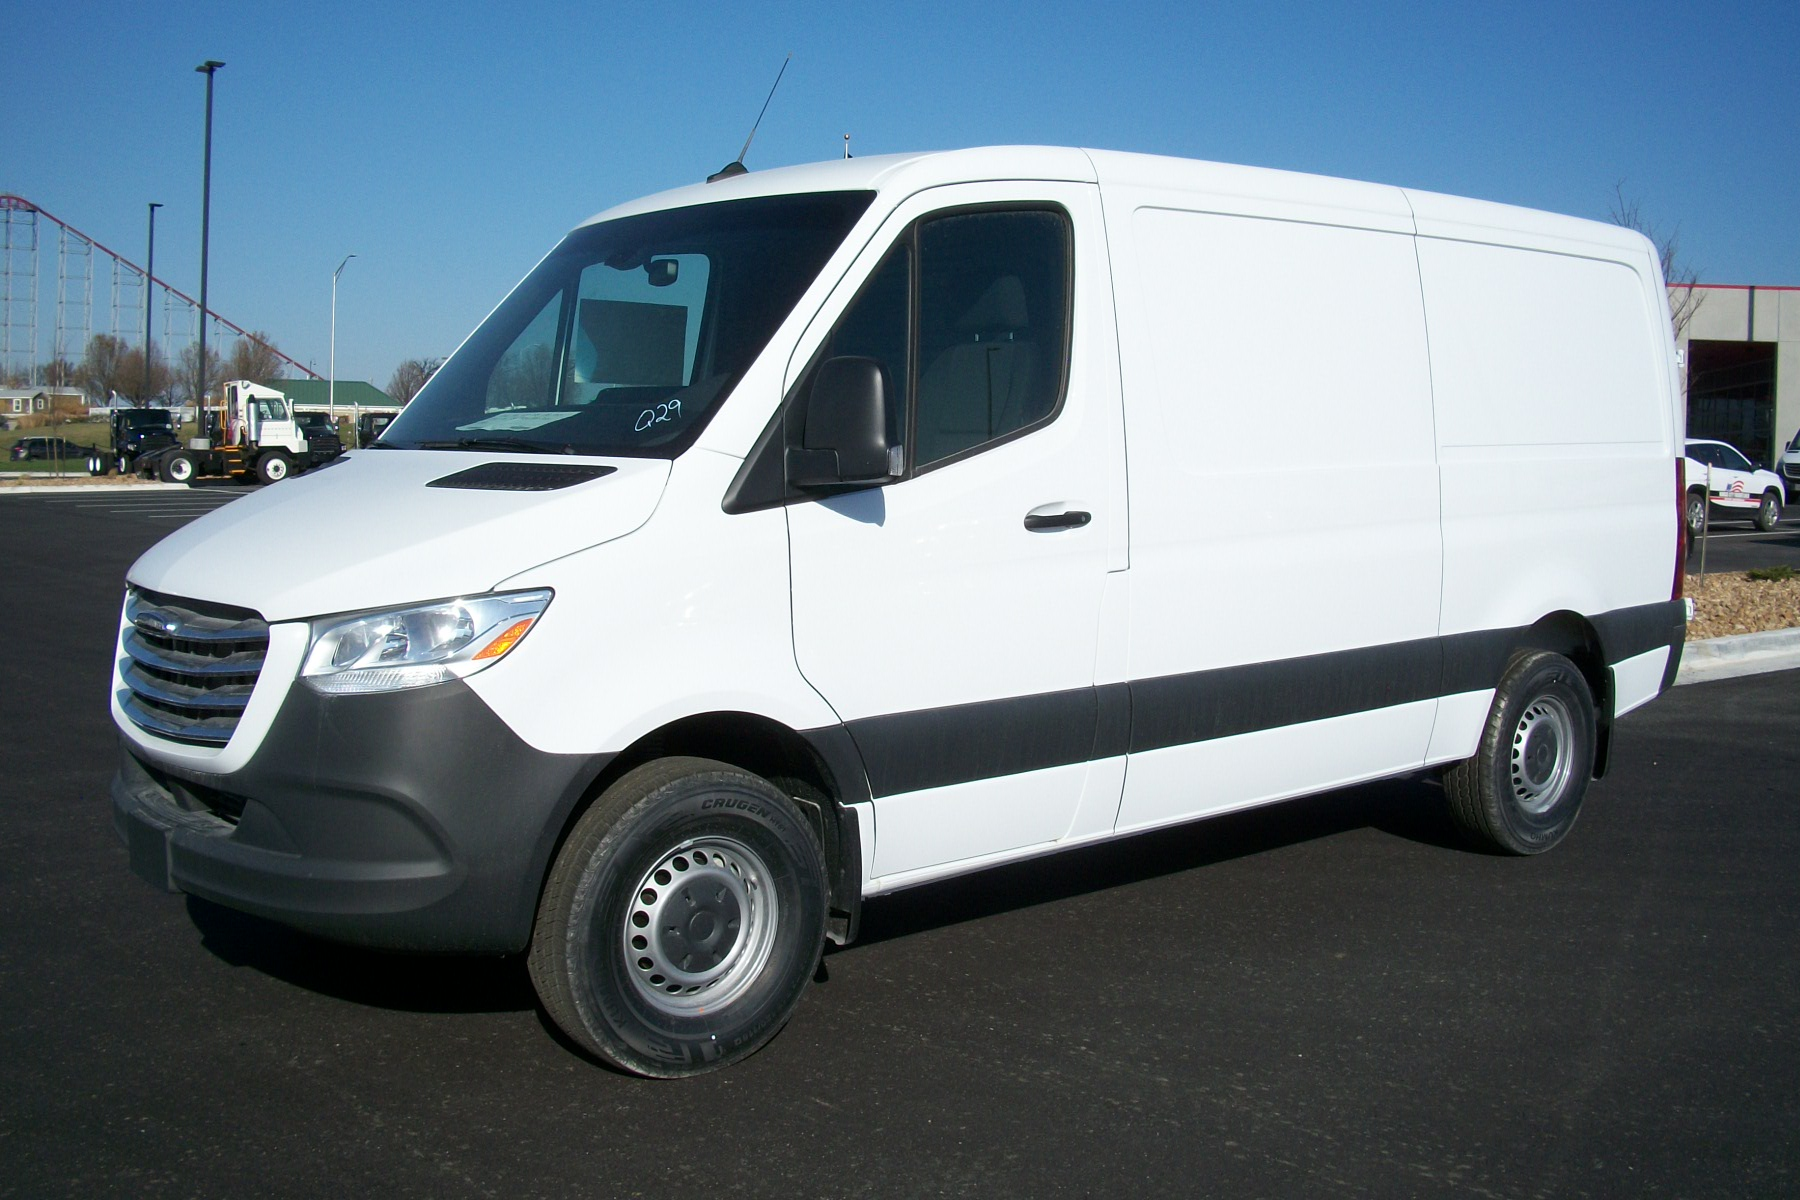 2020 Freightliner sprinter 144 low roof